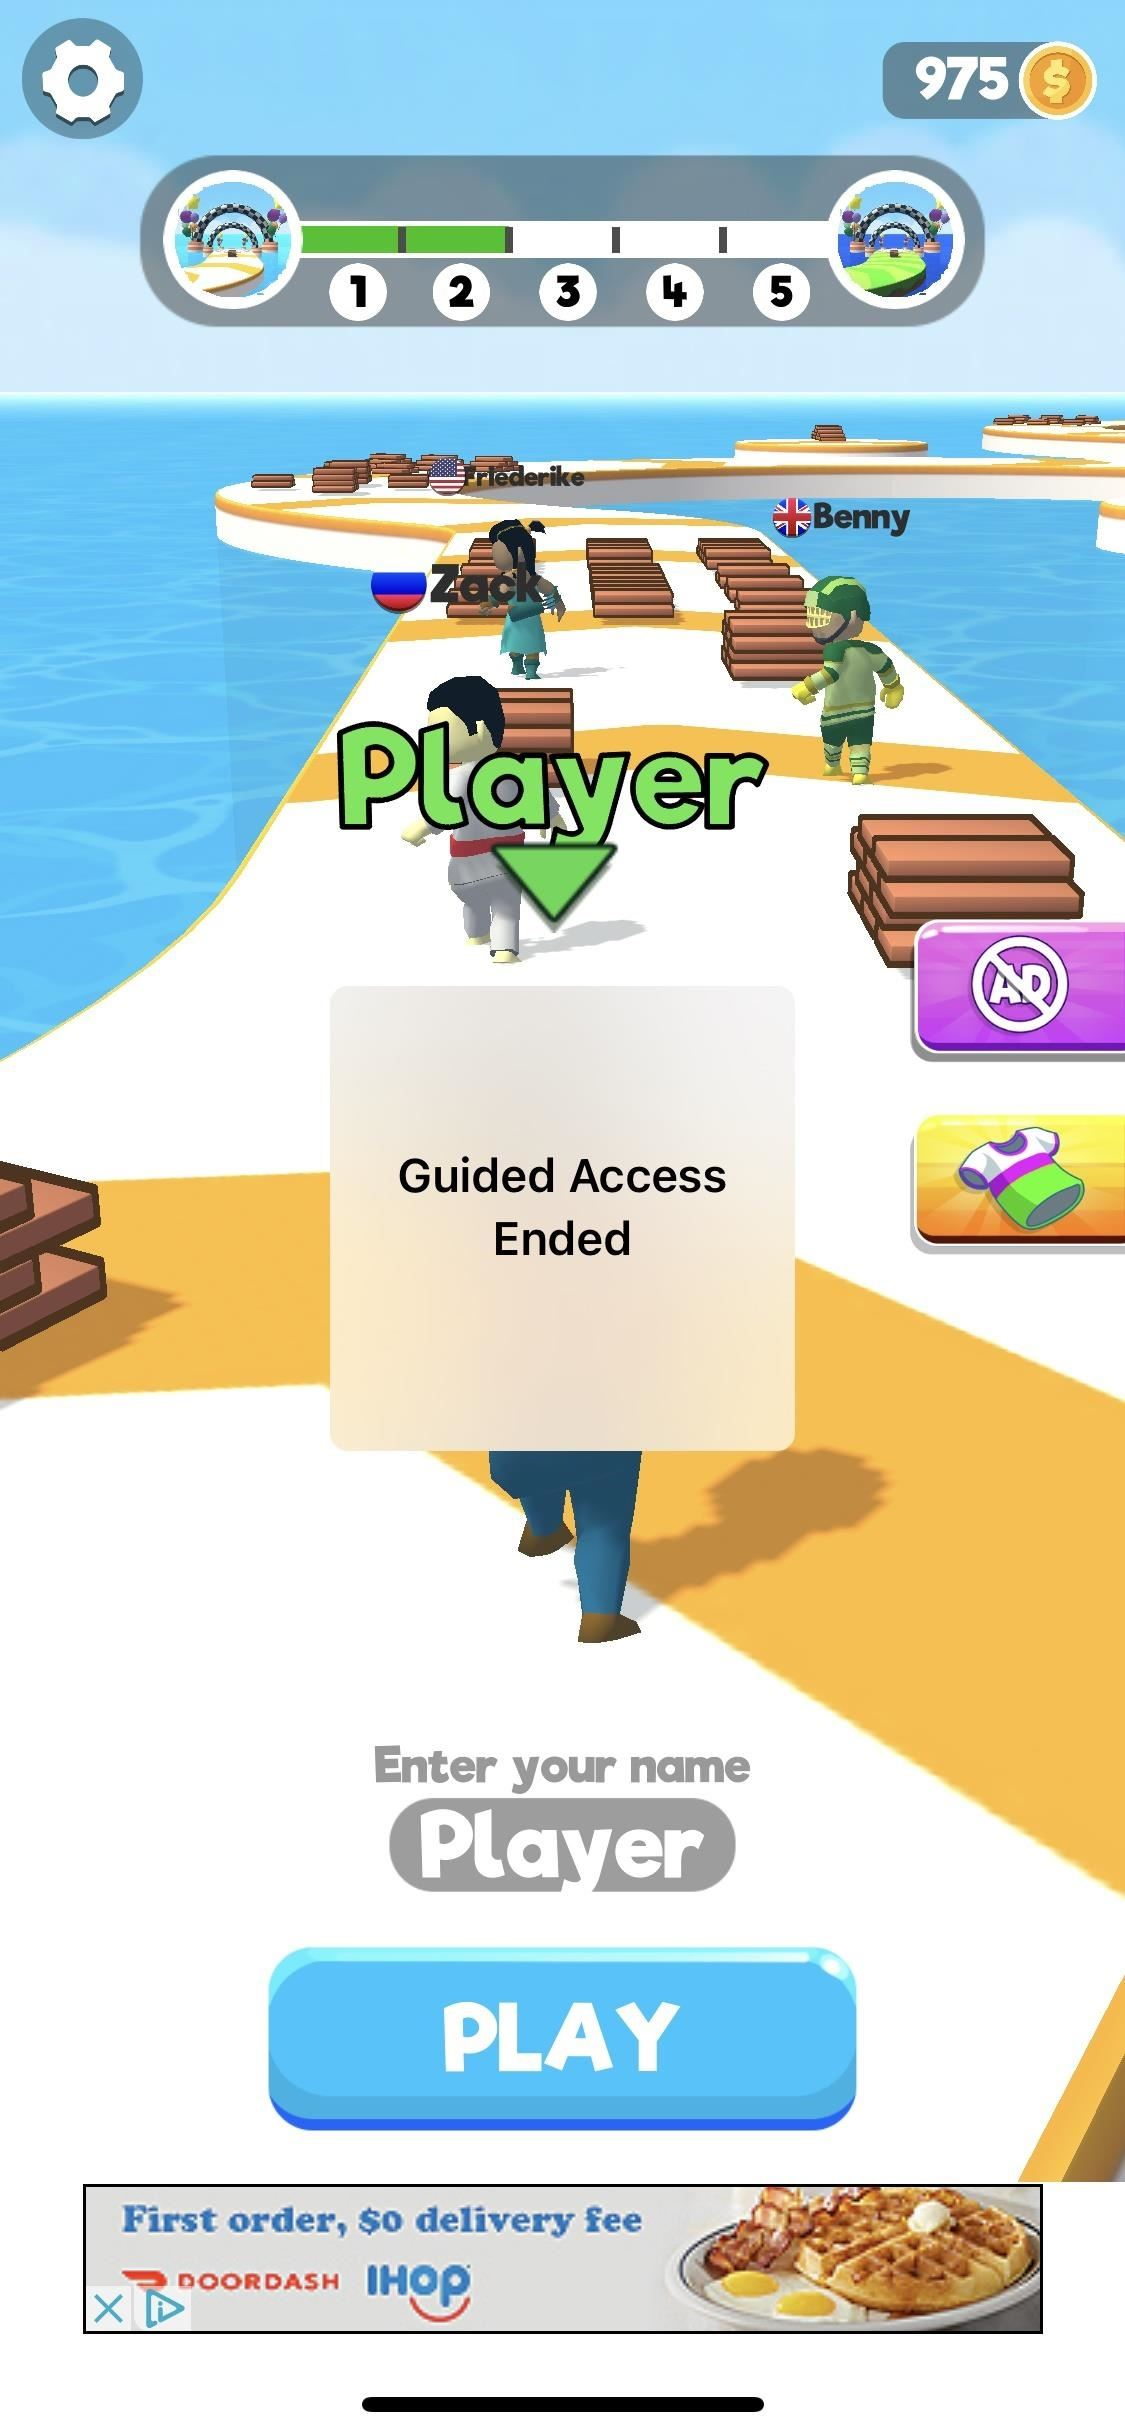 Use This Trick in iPhone Games So You're Not Redirected to Other Apps When Accidentally Tapping Ads You Try to Close